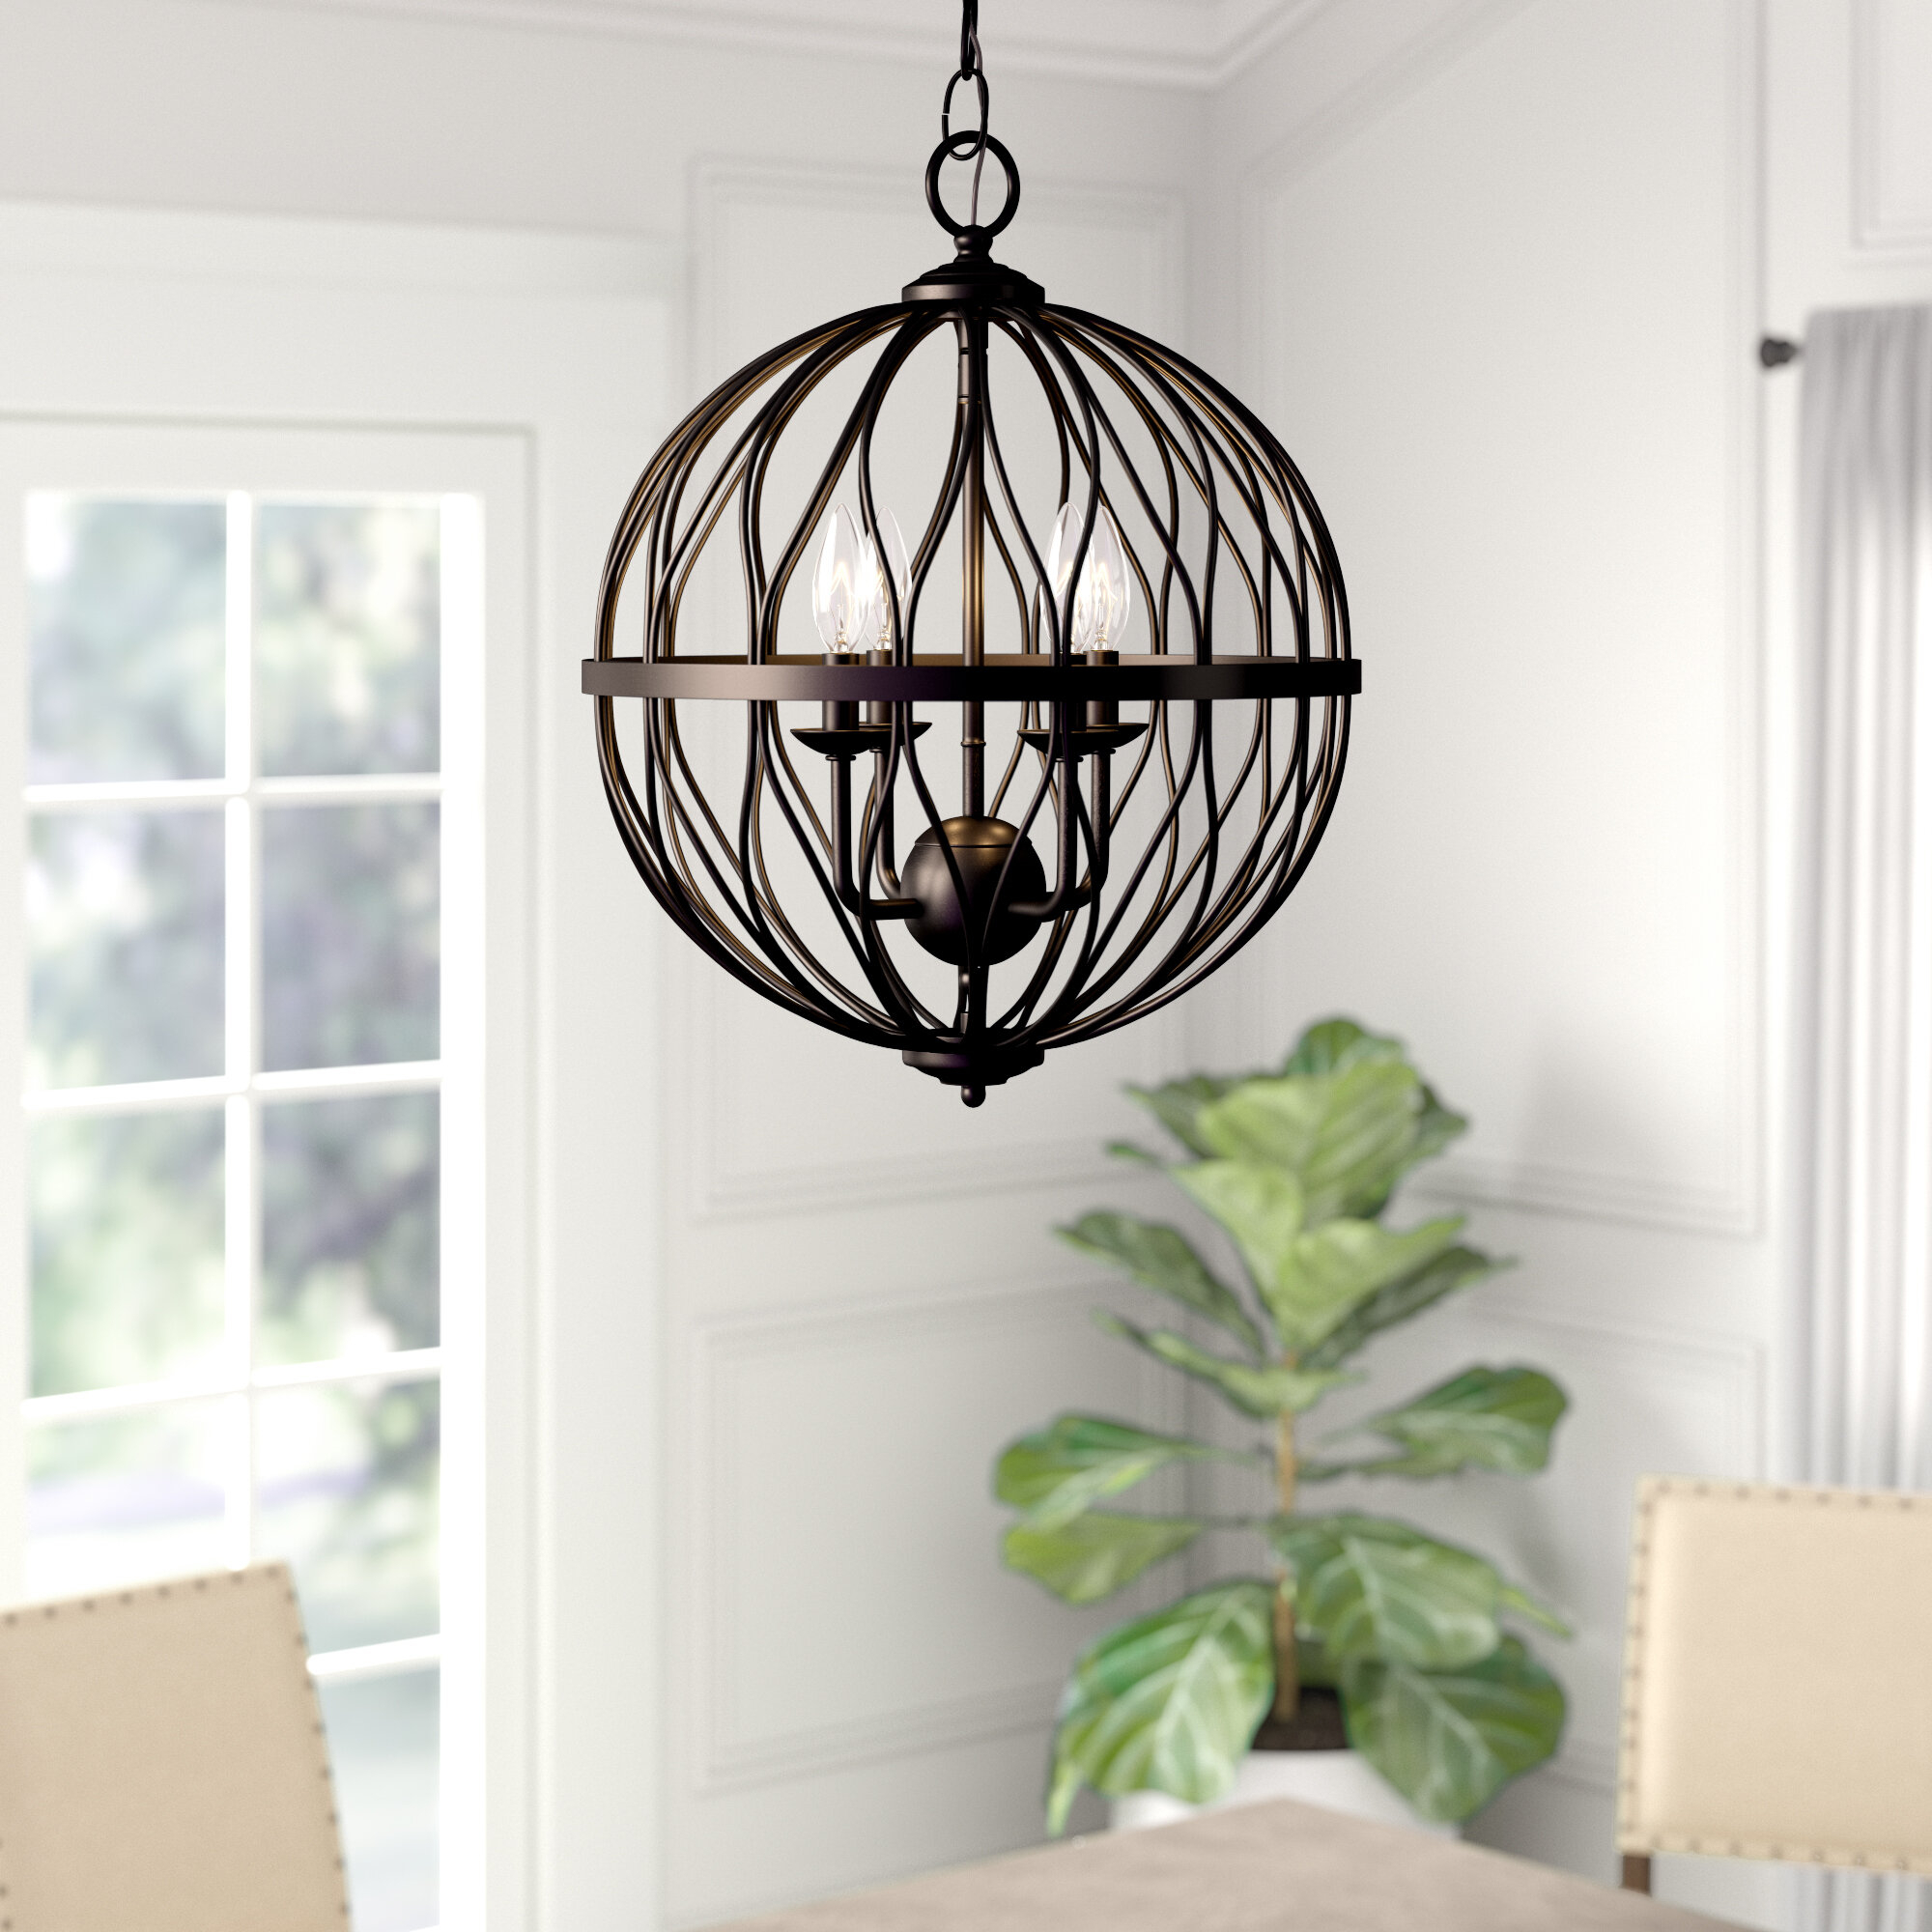 Brittain 3-Light Globe Chandelier intended for Joon 6-Light Globe Chandeliers (Image 3 of 30)